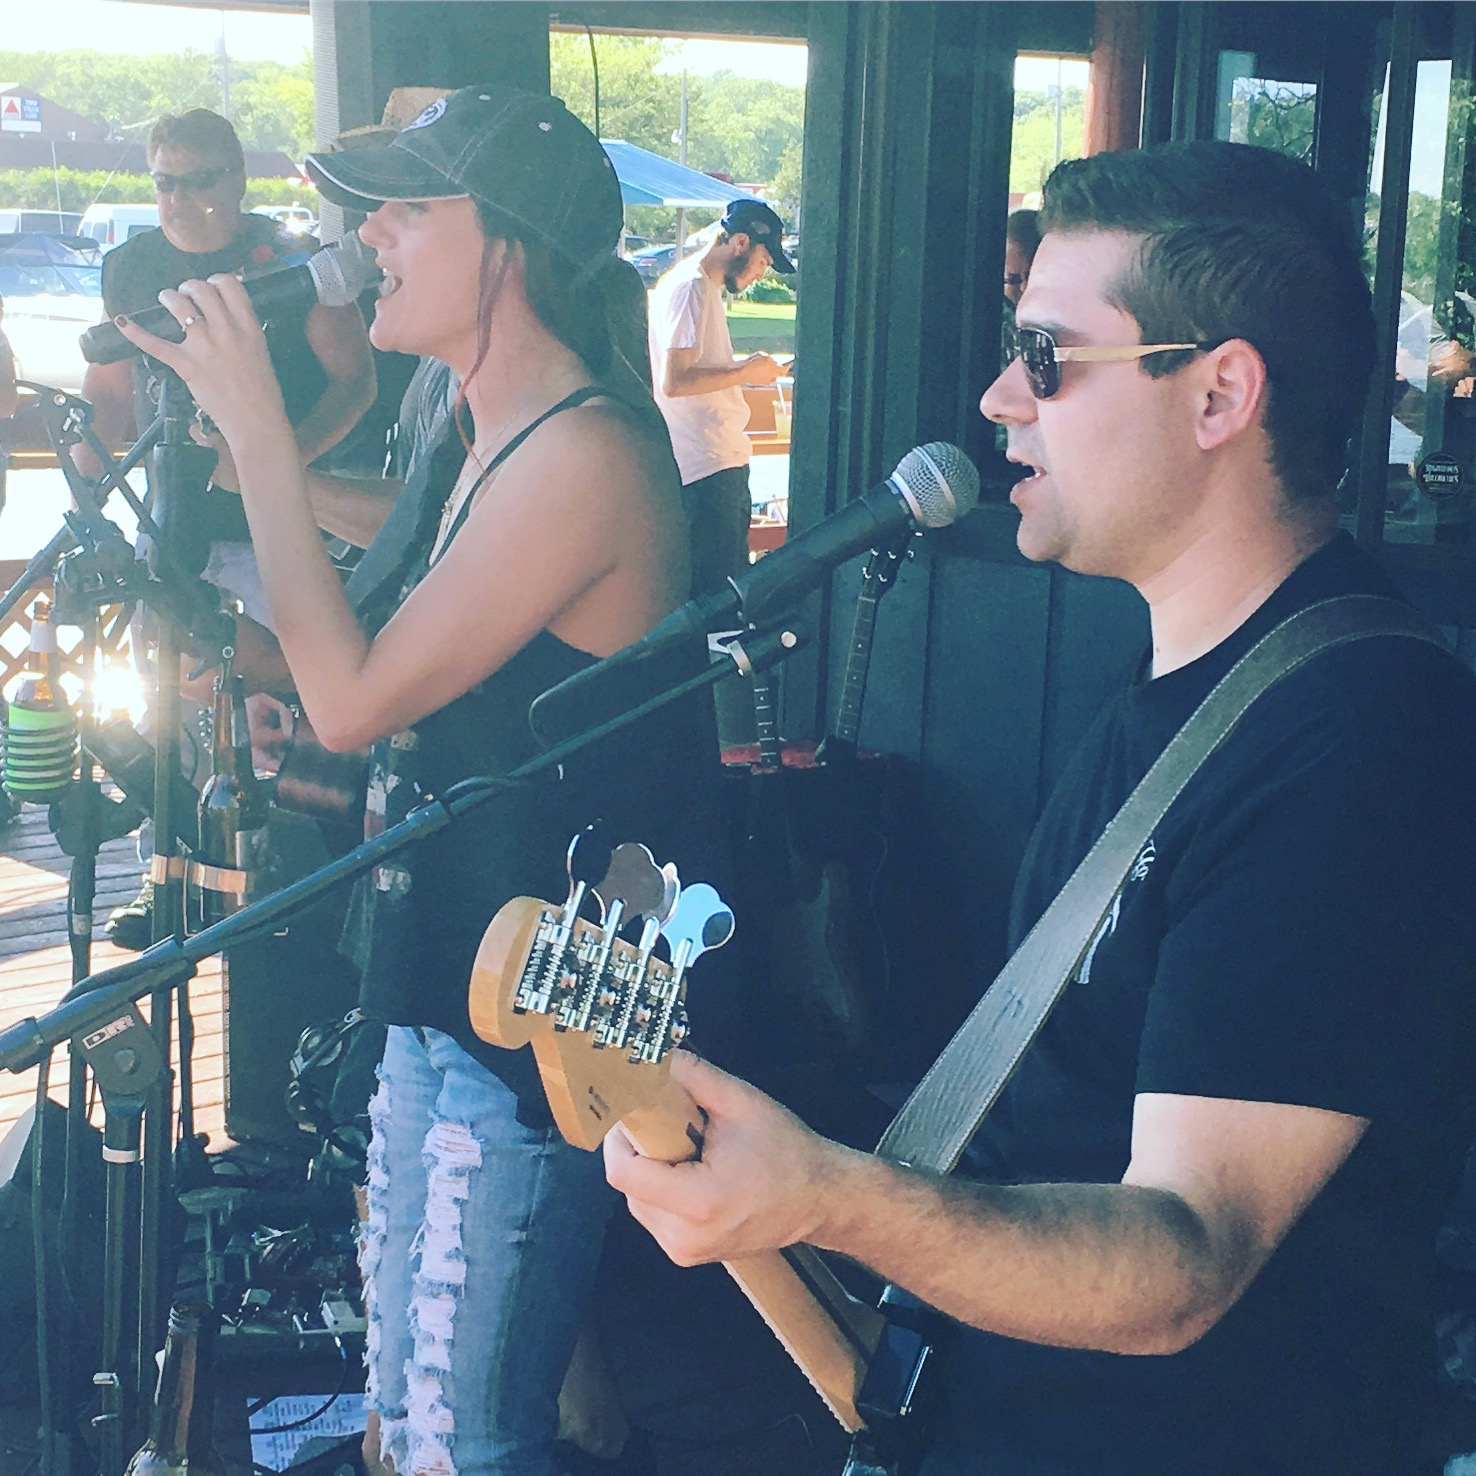 Chrissy Karl and Ken Vercellotti of CK and The Gray performs at Horns & Halos Saloon in Channahon, IL